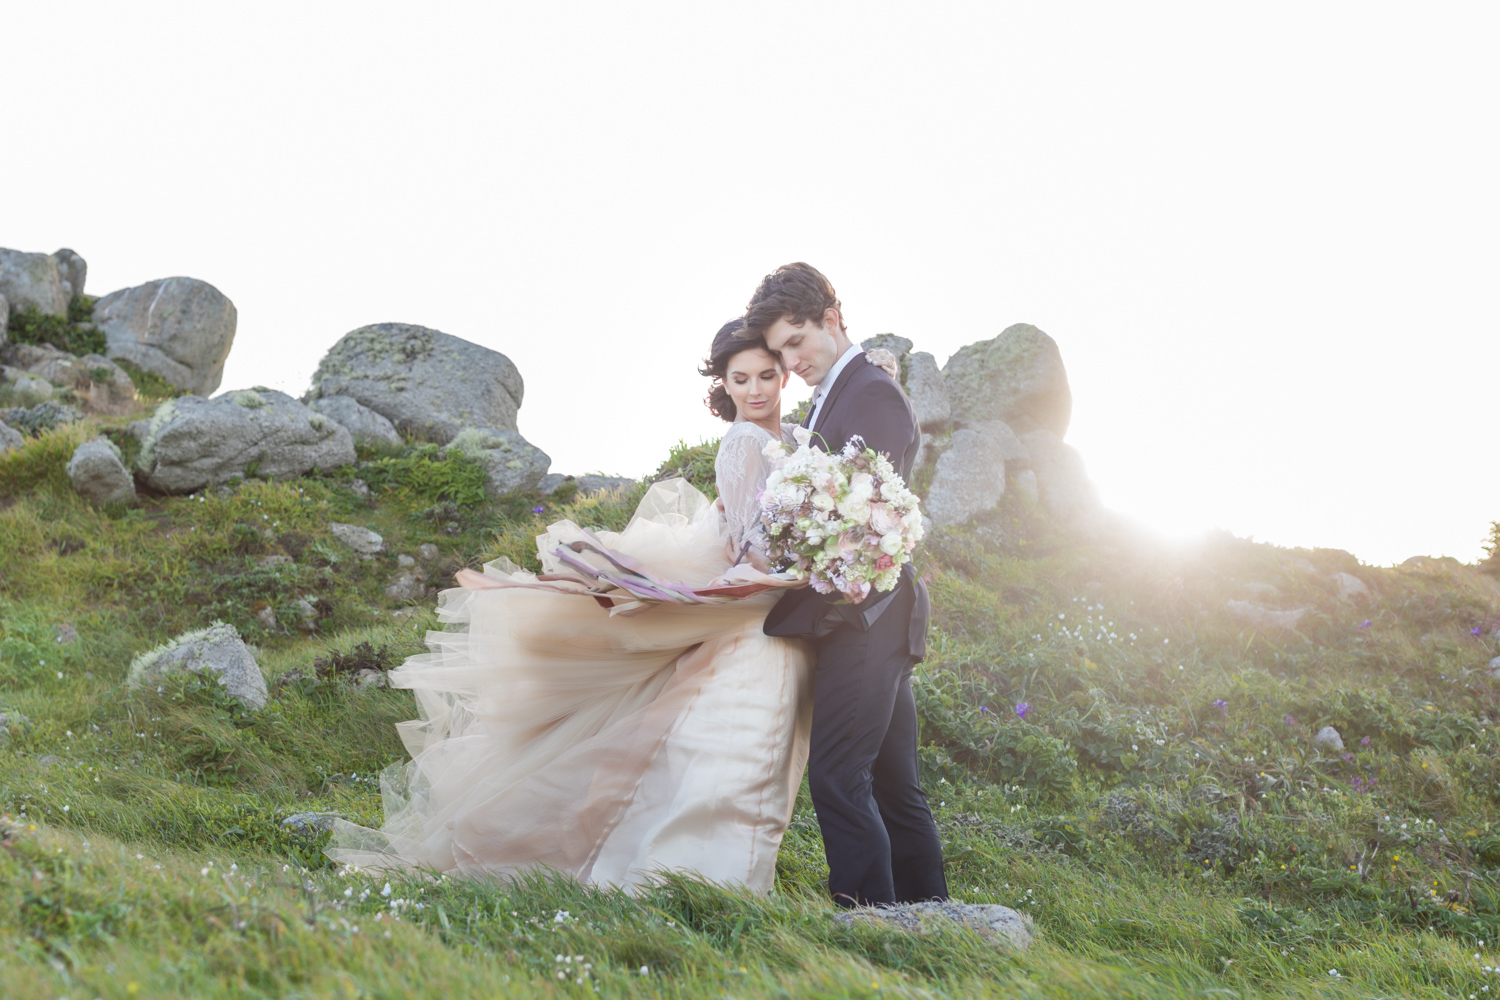 incredible wedding images with beautiful light